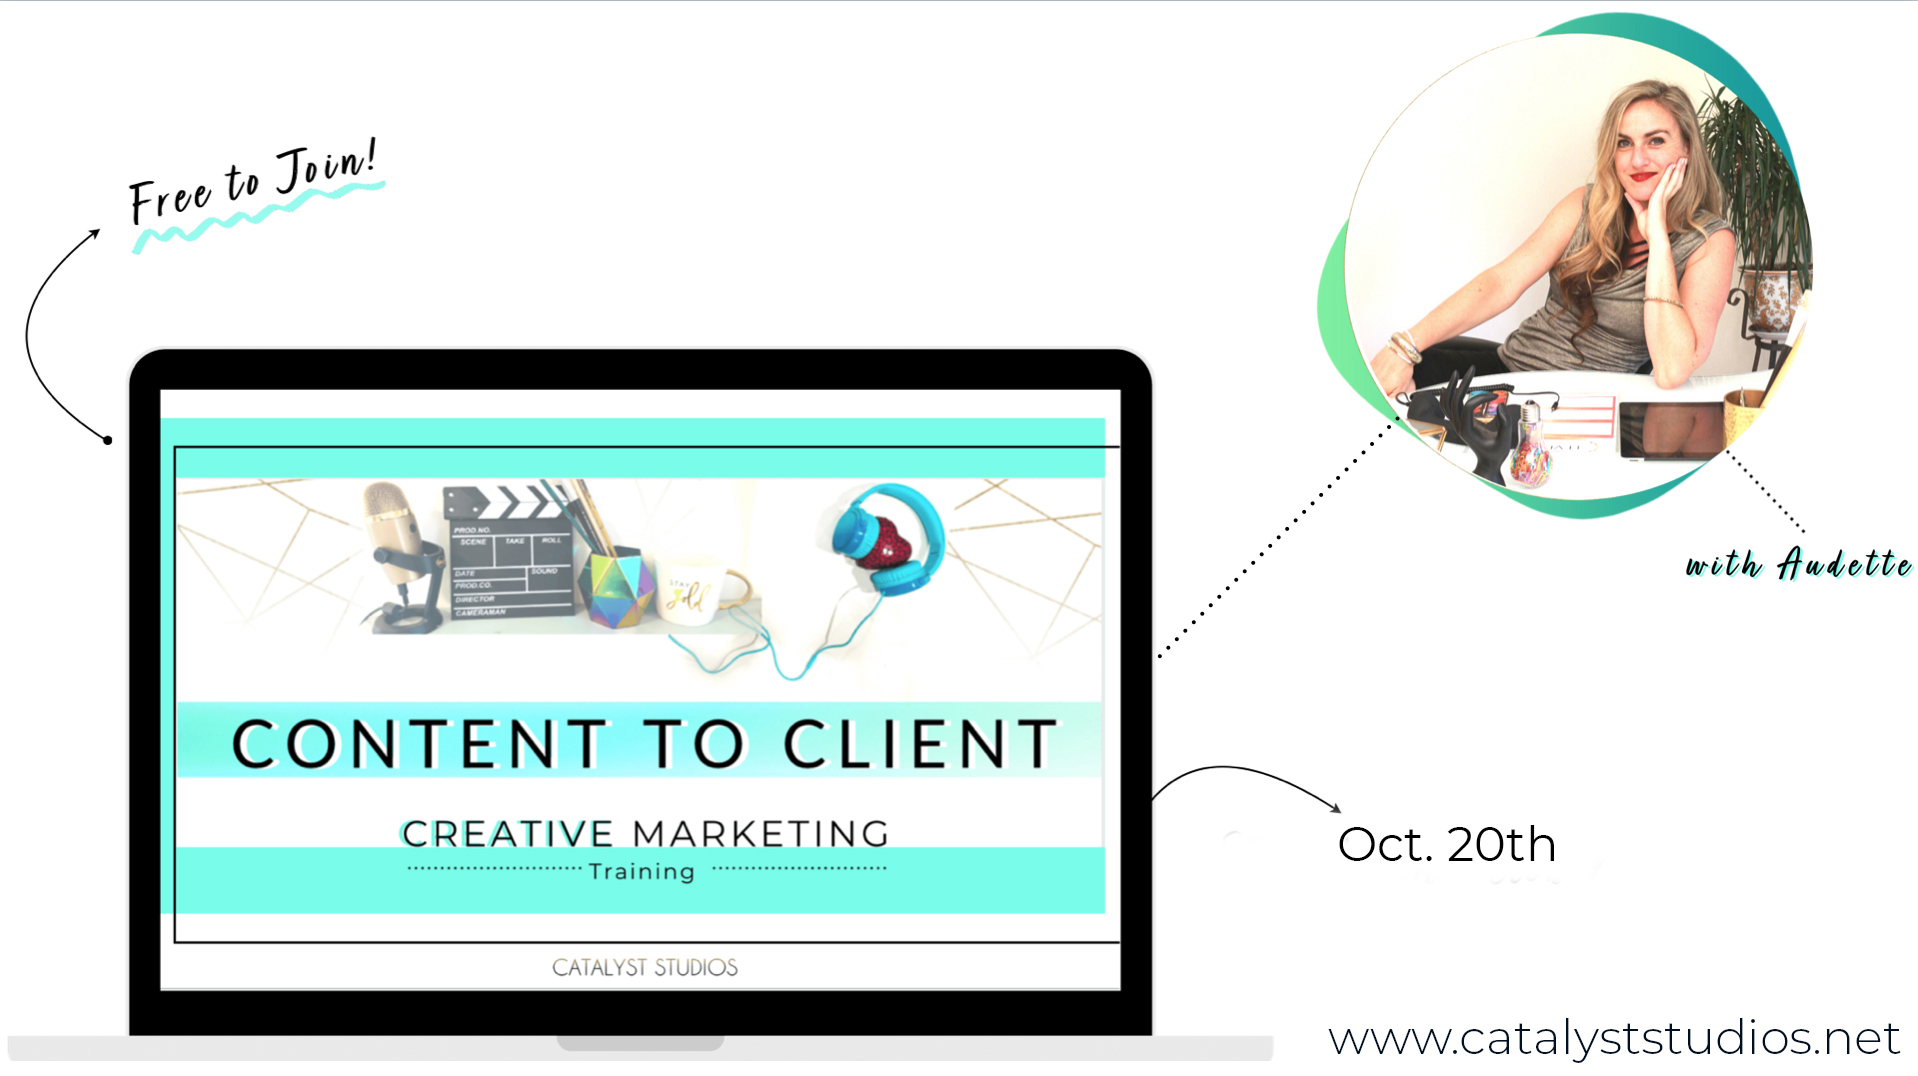 Content to Client - creative marketing training by Audette- Catalyst Studios